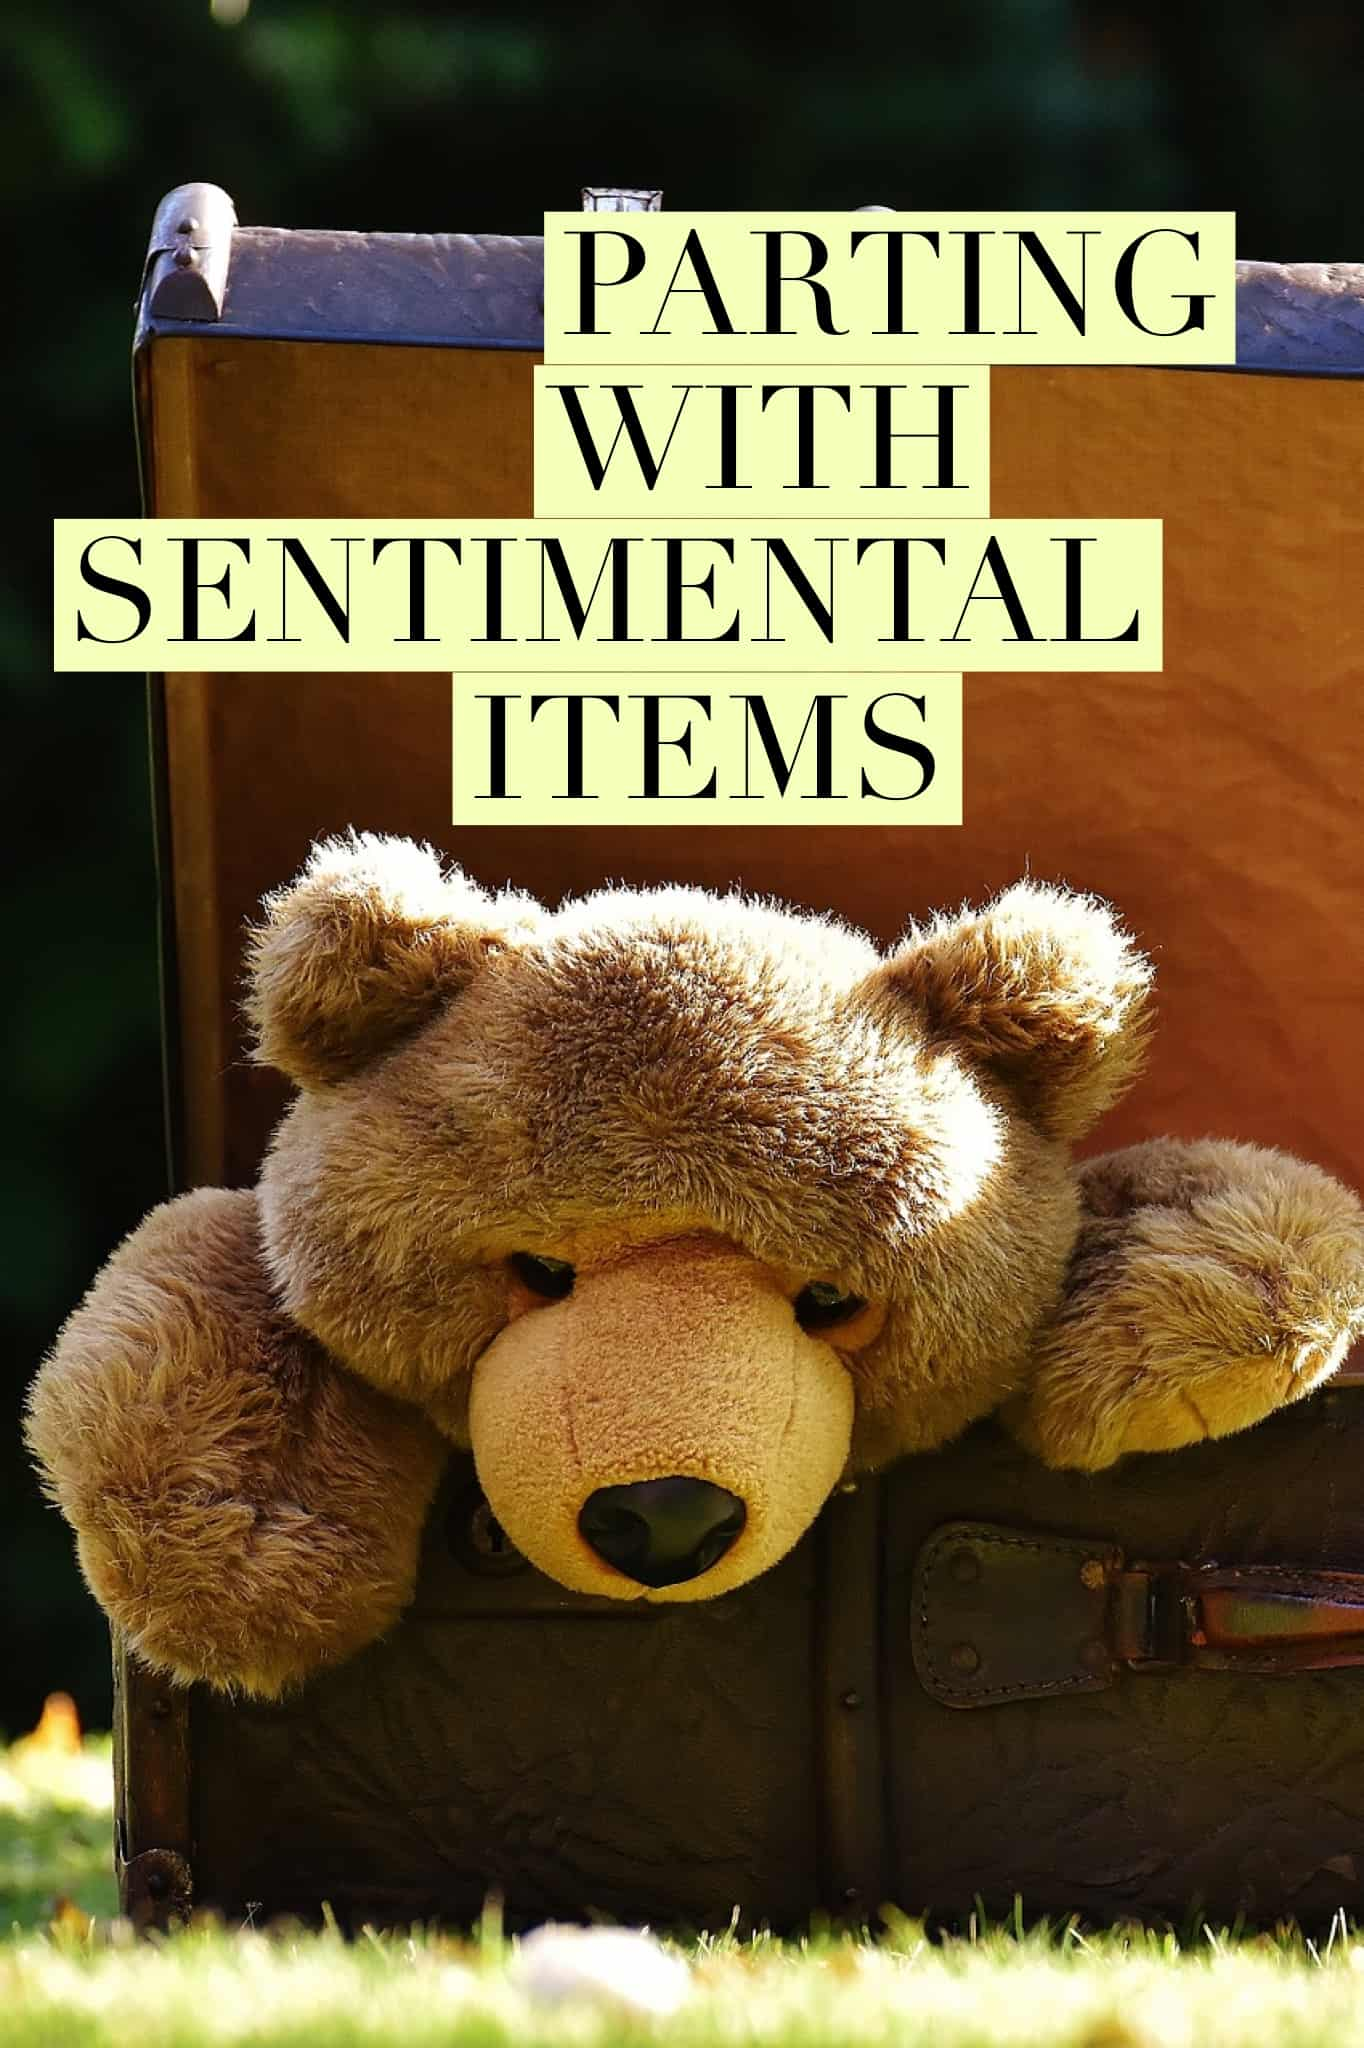 Parting with Sentimental Items title